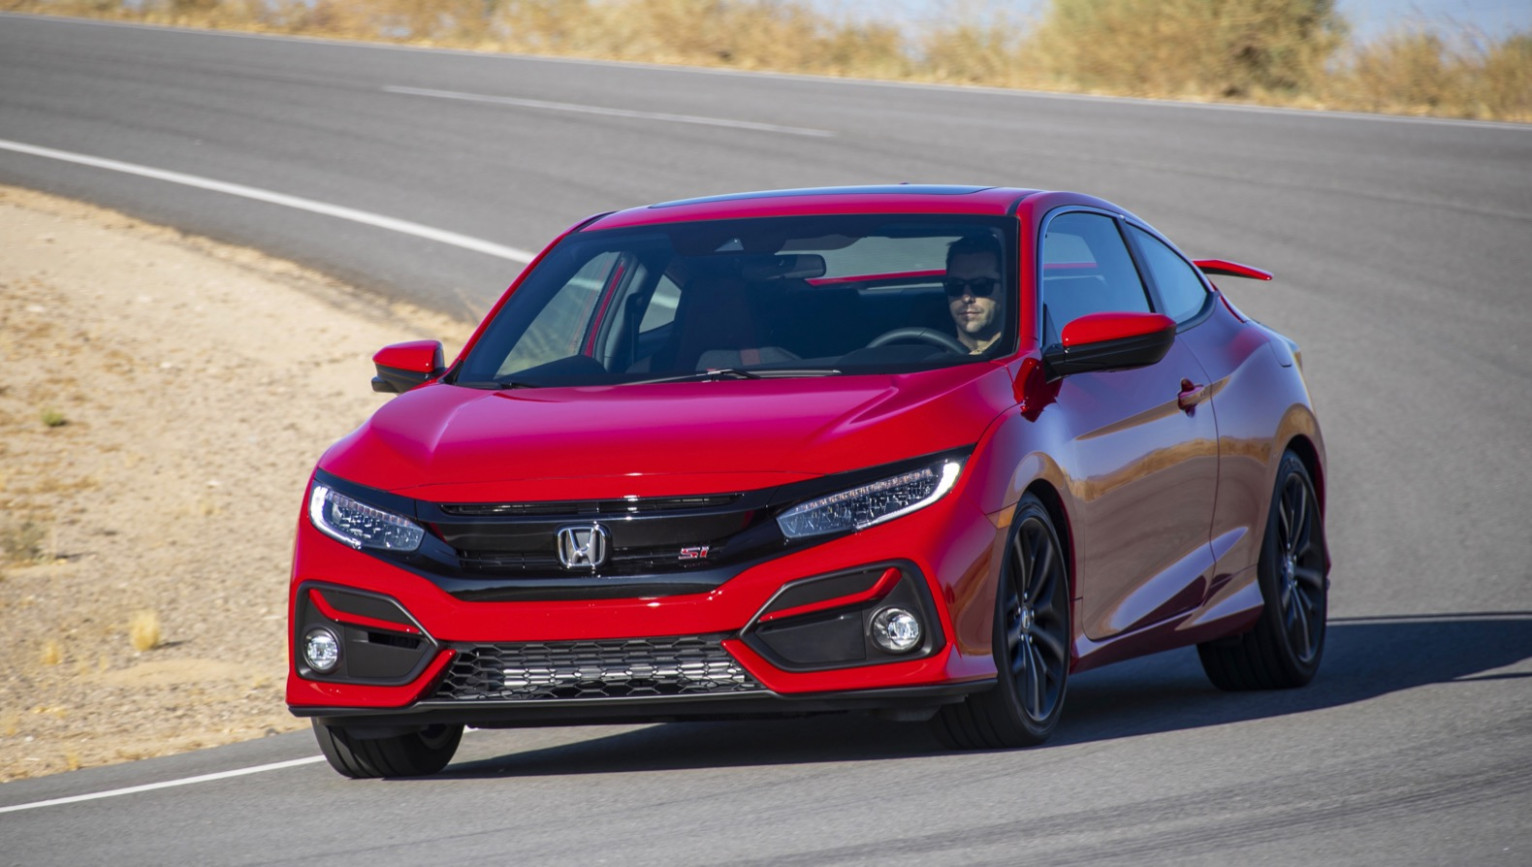 12 Honda Civic Si Review: The Performance Bargain | The Torque ..